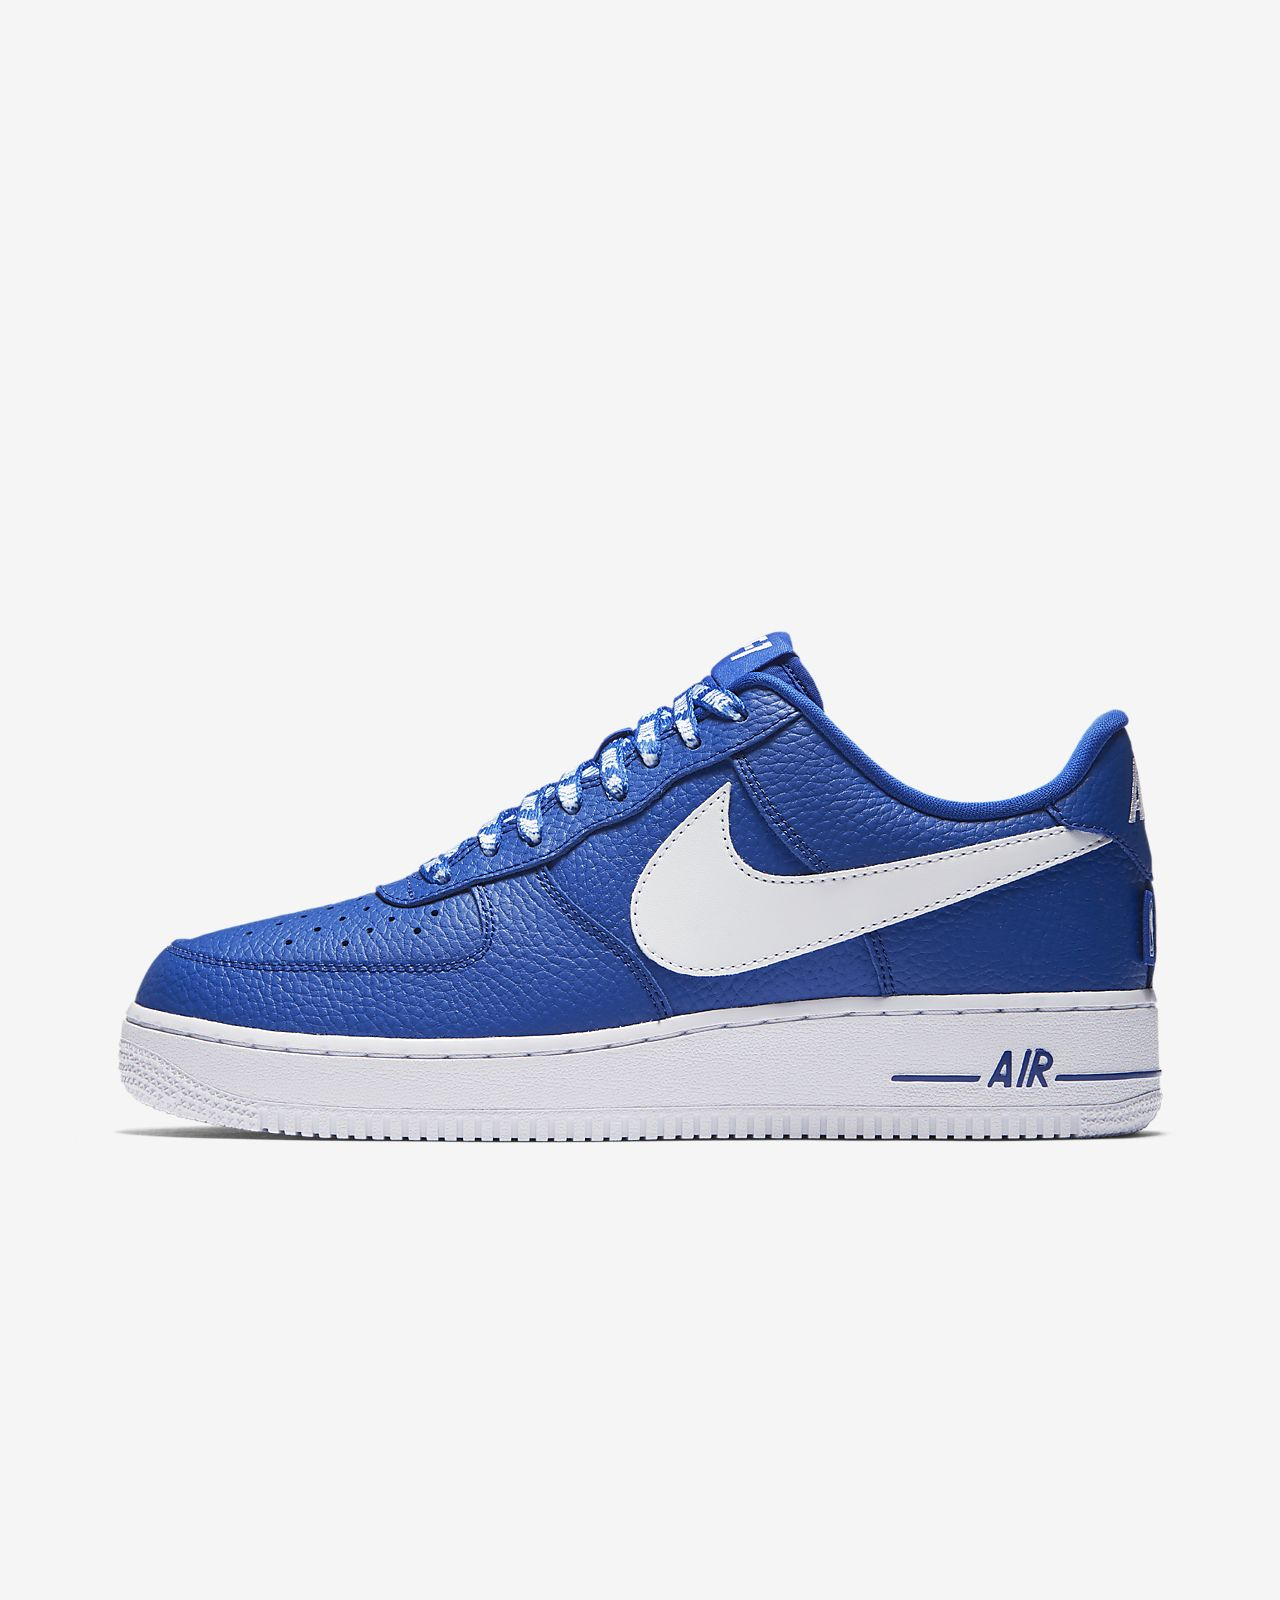 Scarpe uomo nike air force 1 for Scarpe simili alle air force